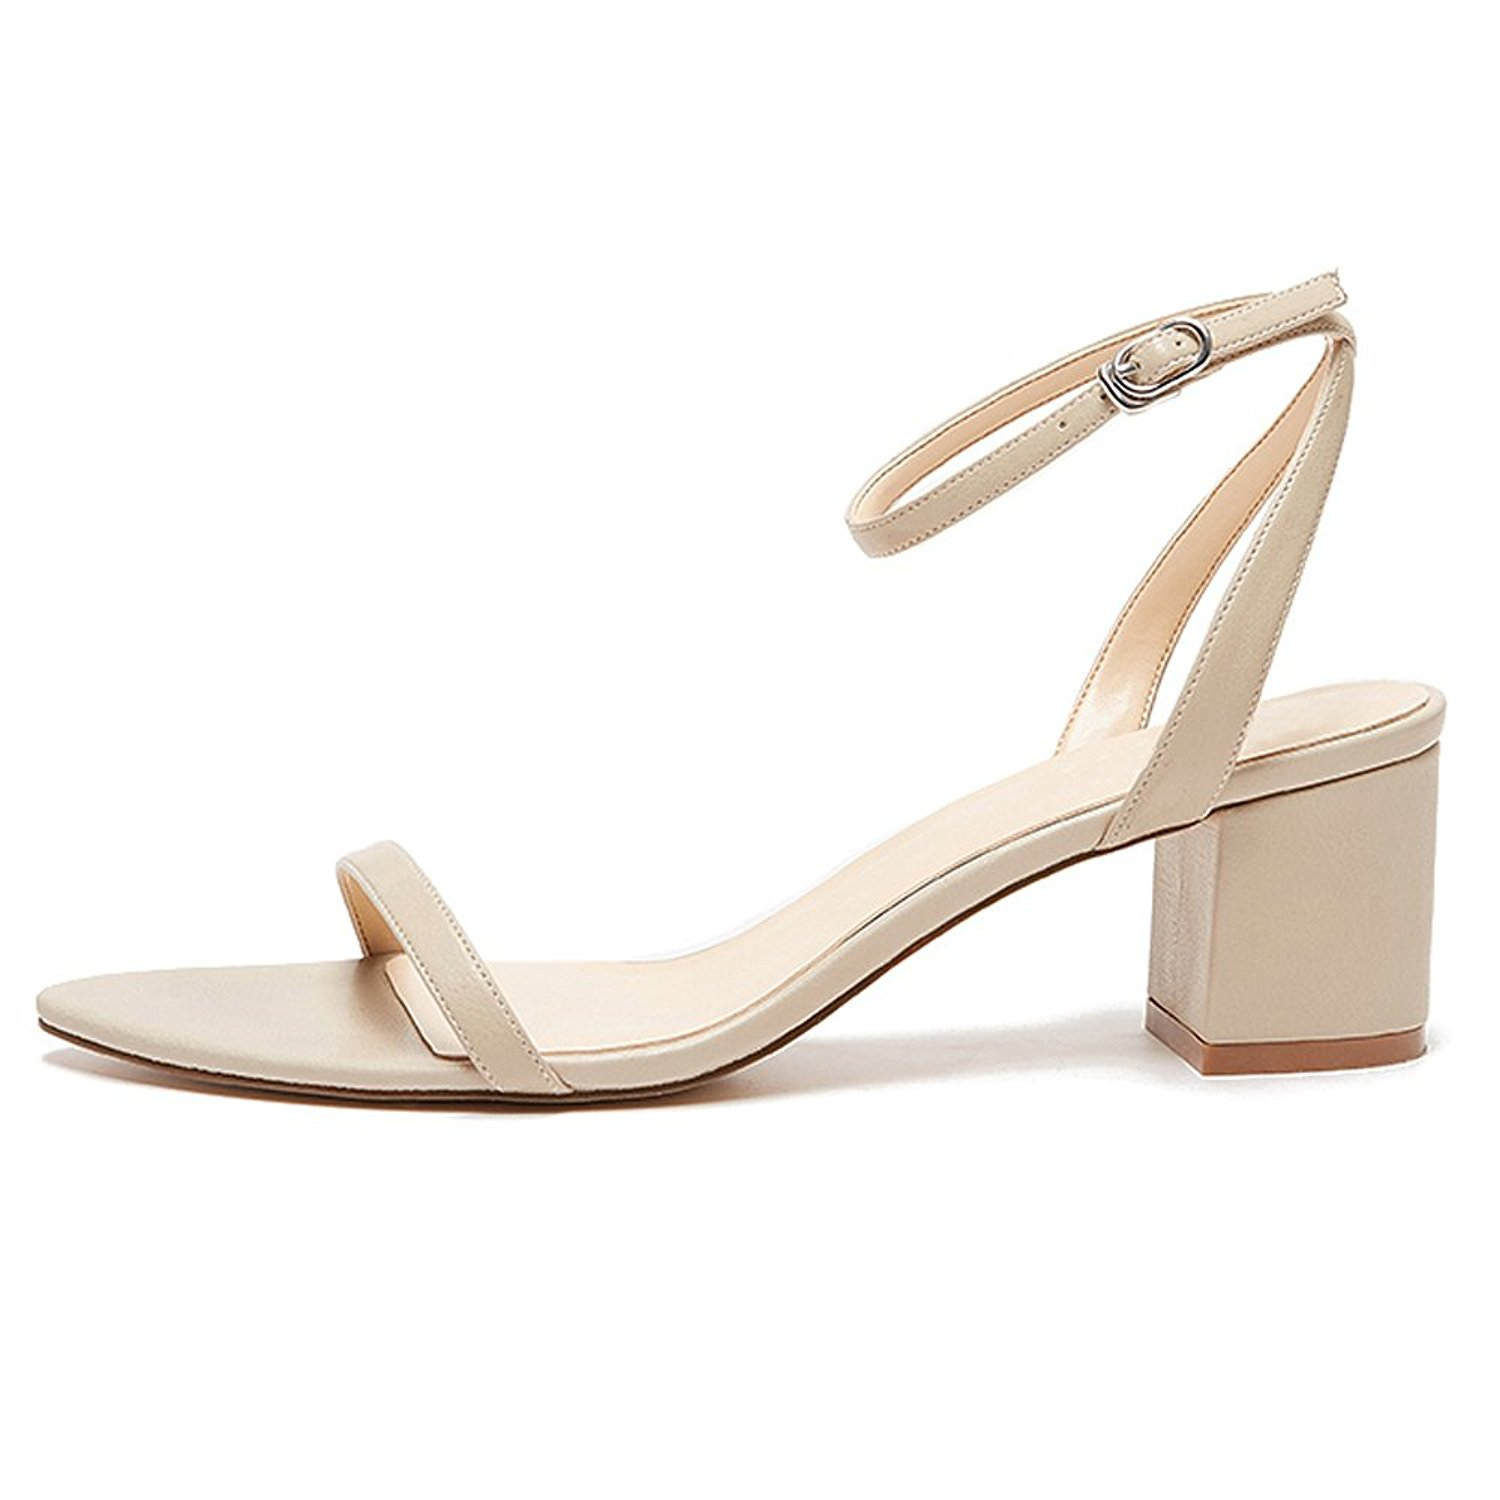 bfb025b363 Get Quotations · yBeauty Women's Block Mid Heel Sandals Ankle Strap Pumps  Buckle Chunky Heel Sandals Low Heel Sandals